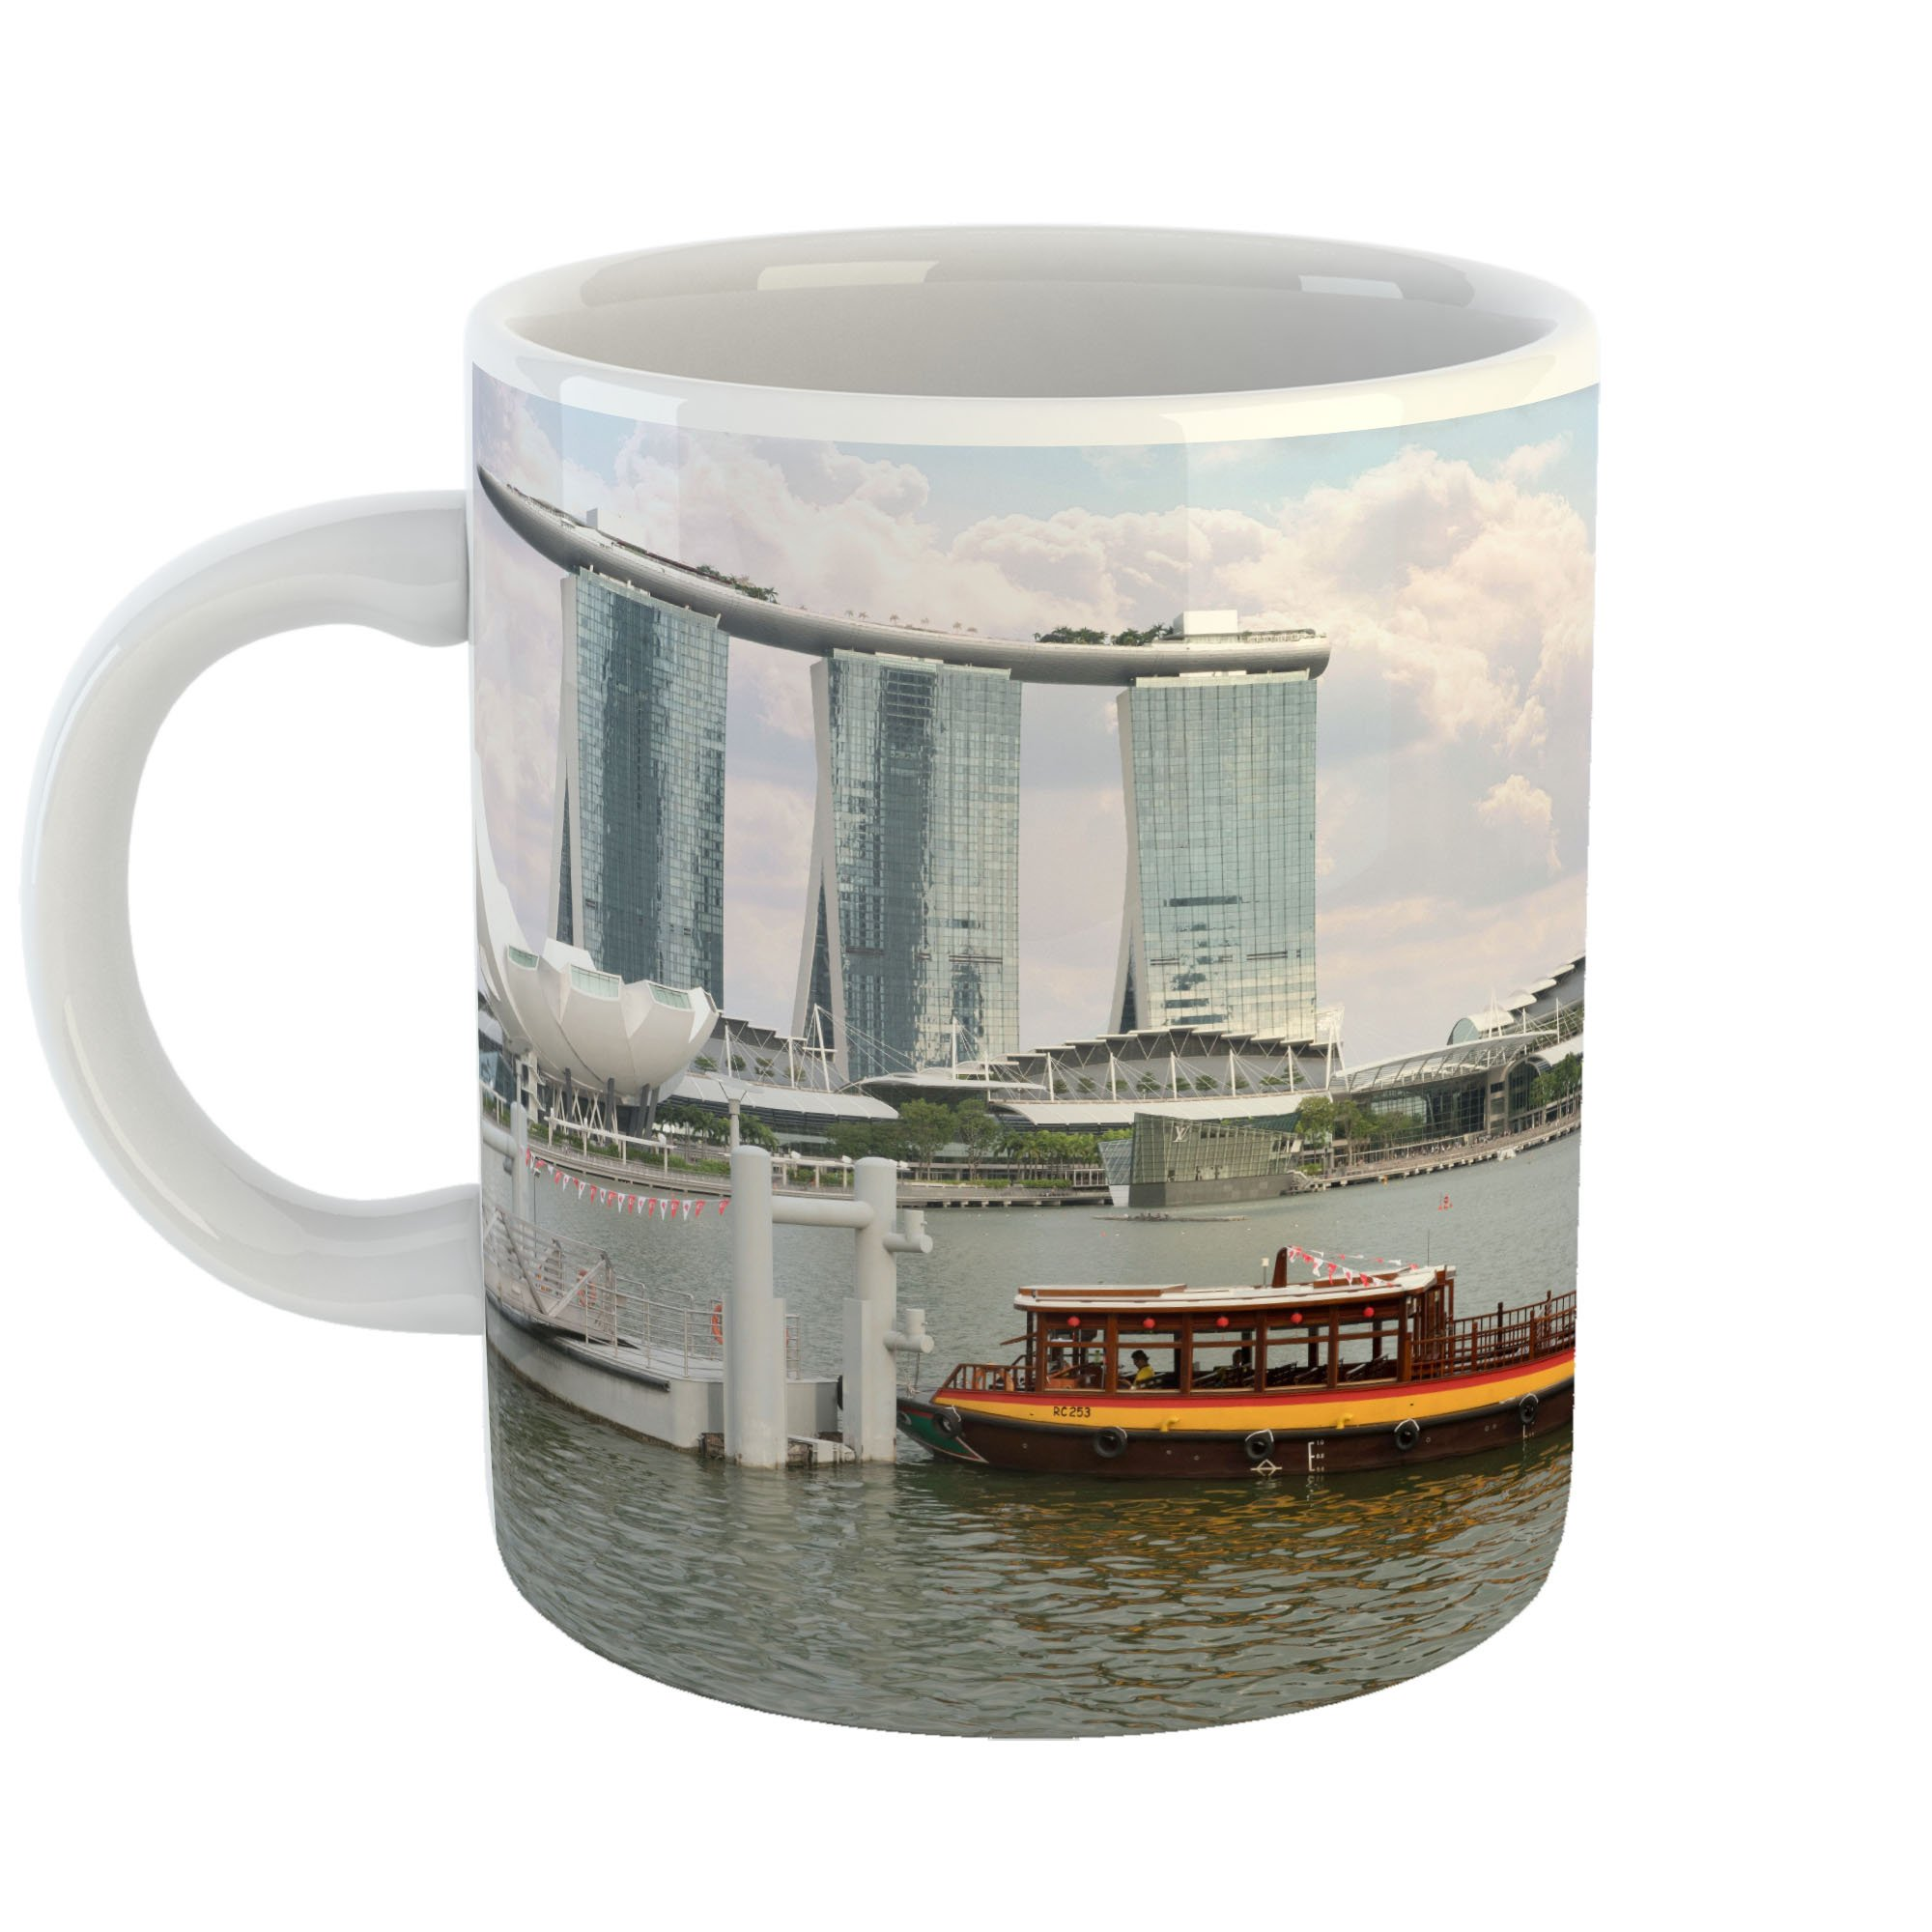 Westlake Art - Hotel Boat - 11oz Coffee Cup Mug - Modern Picture Photography Artwork Home Office Birthday Gift - 11 Ounce (7B74-30A43)